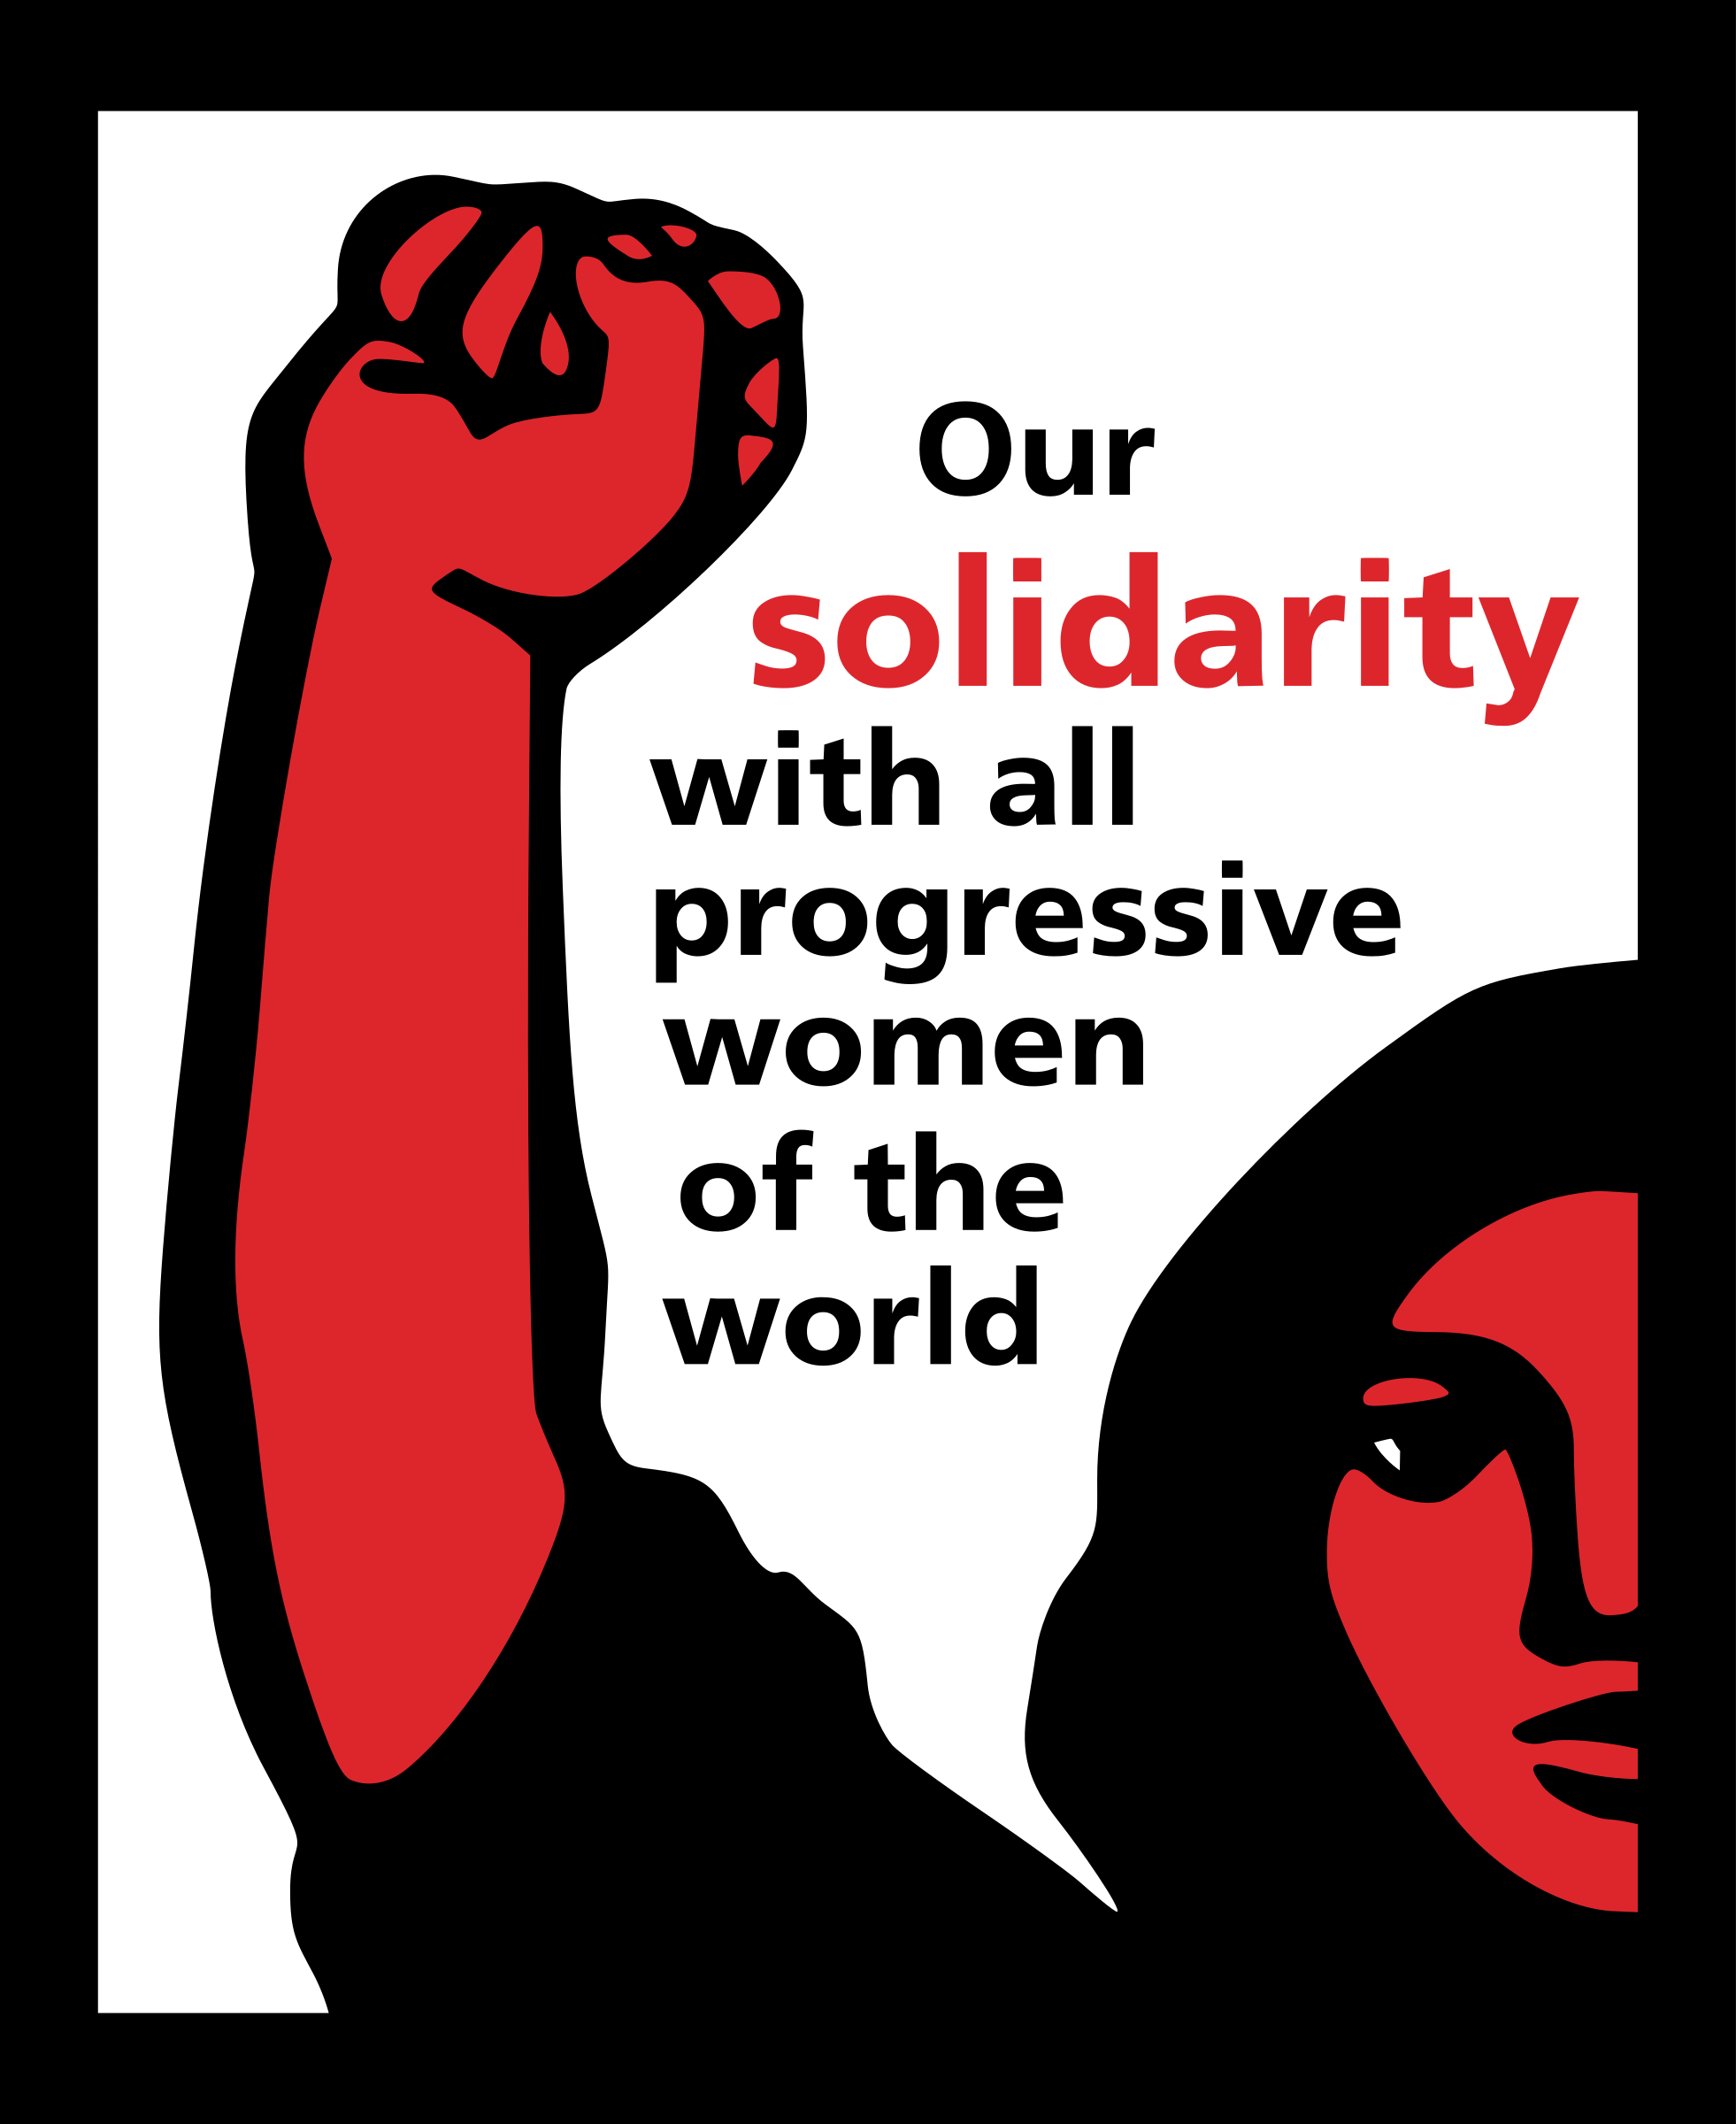 Our solidarity with all progressive women of the world by worker